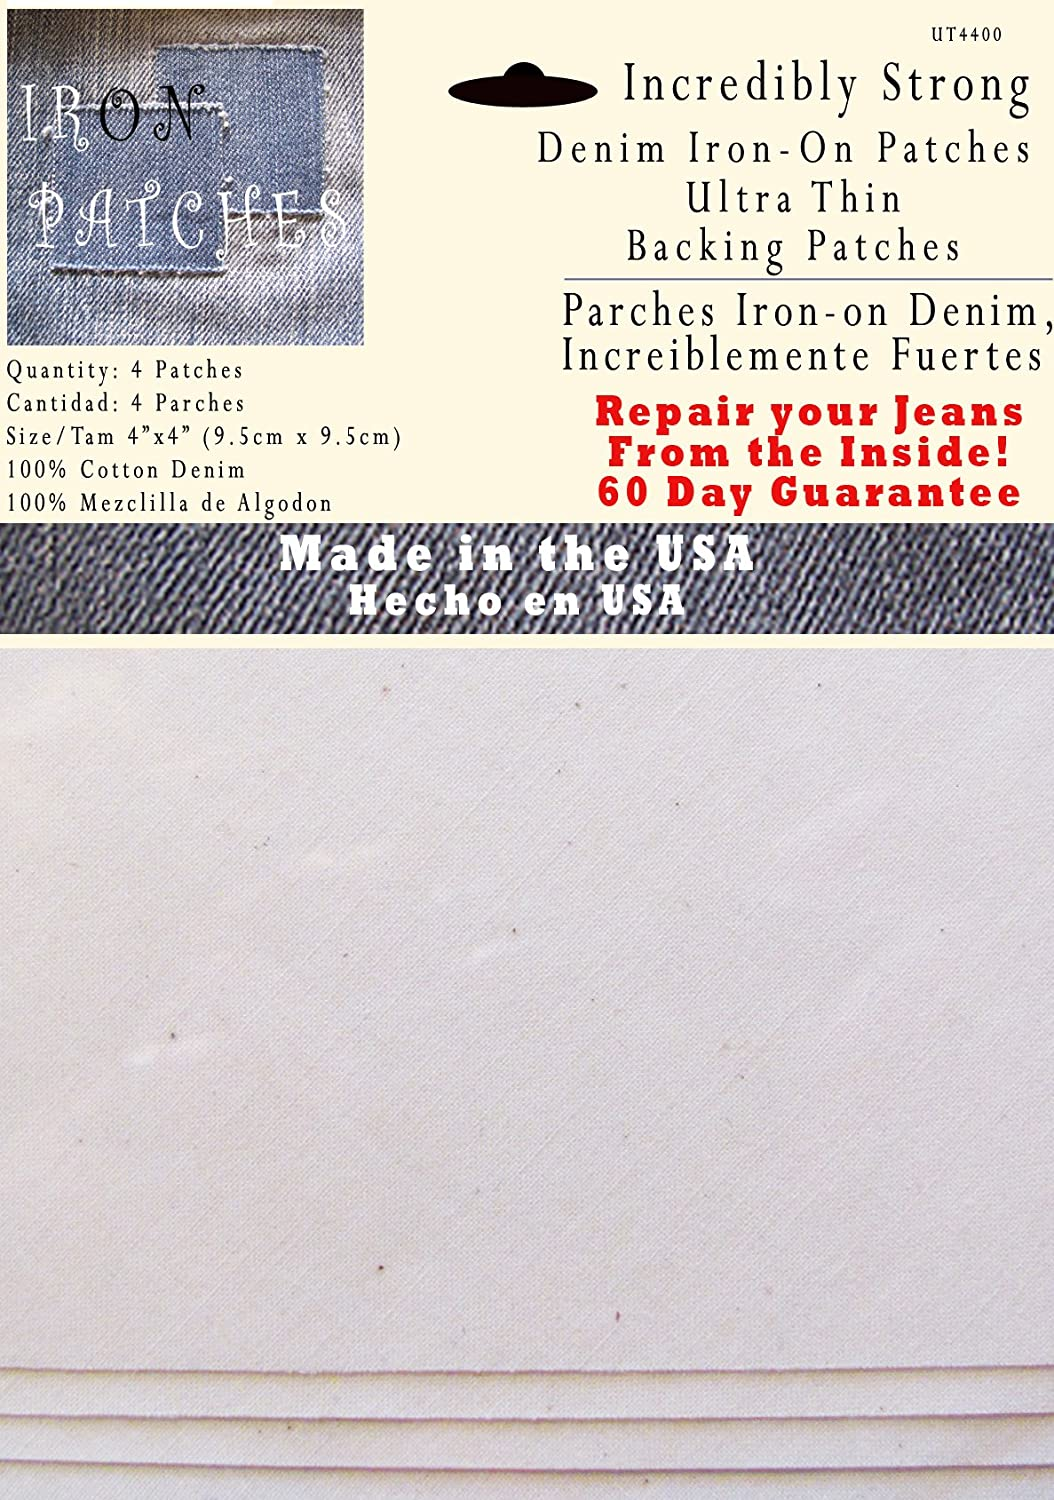 White Super Strong Iron on Inside Patch 4 Ultra Thin Backing Patches